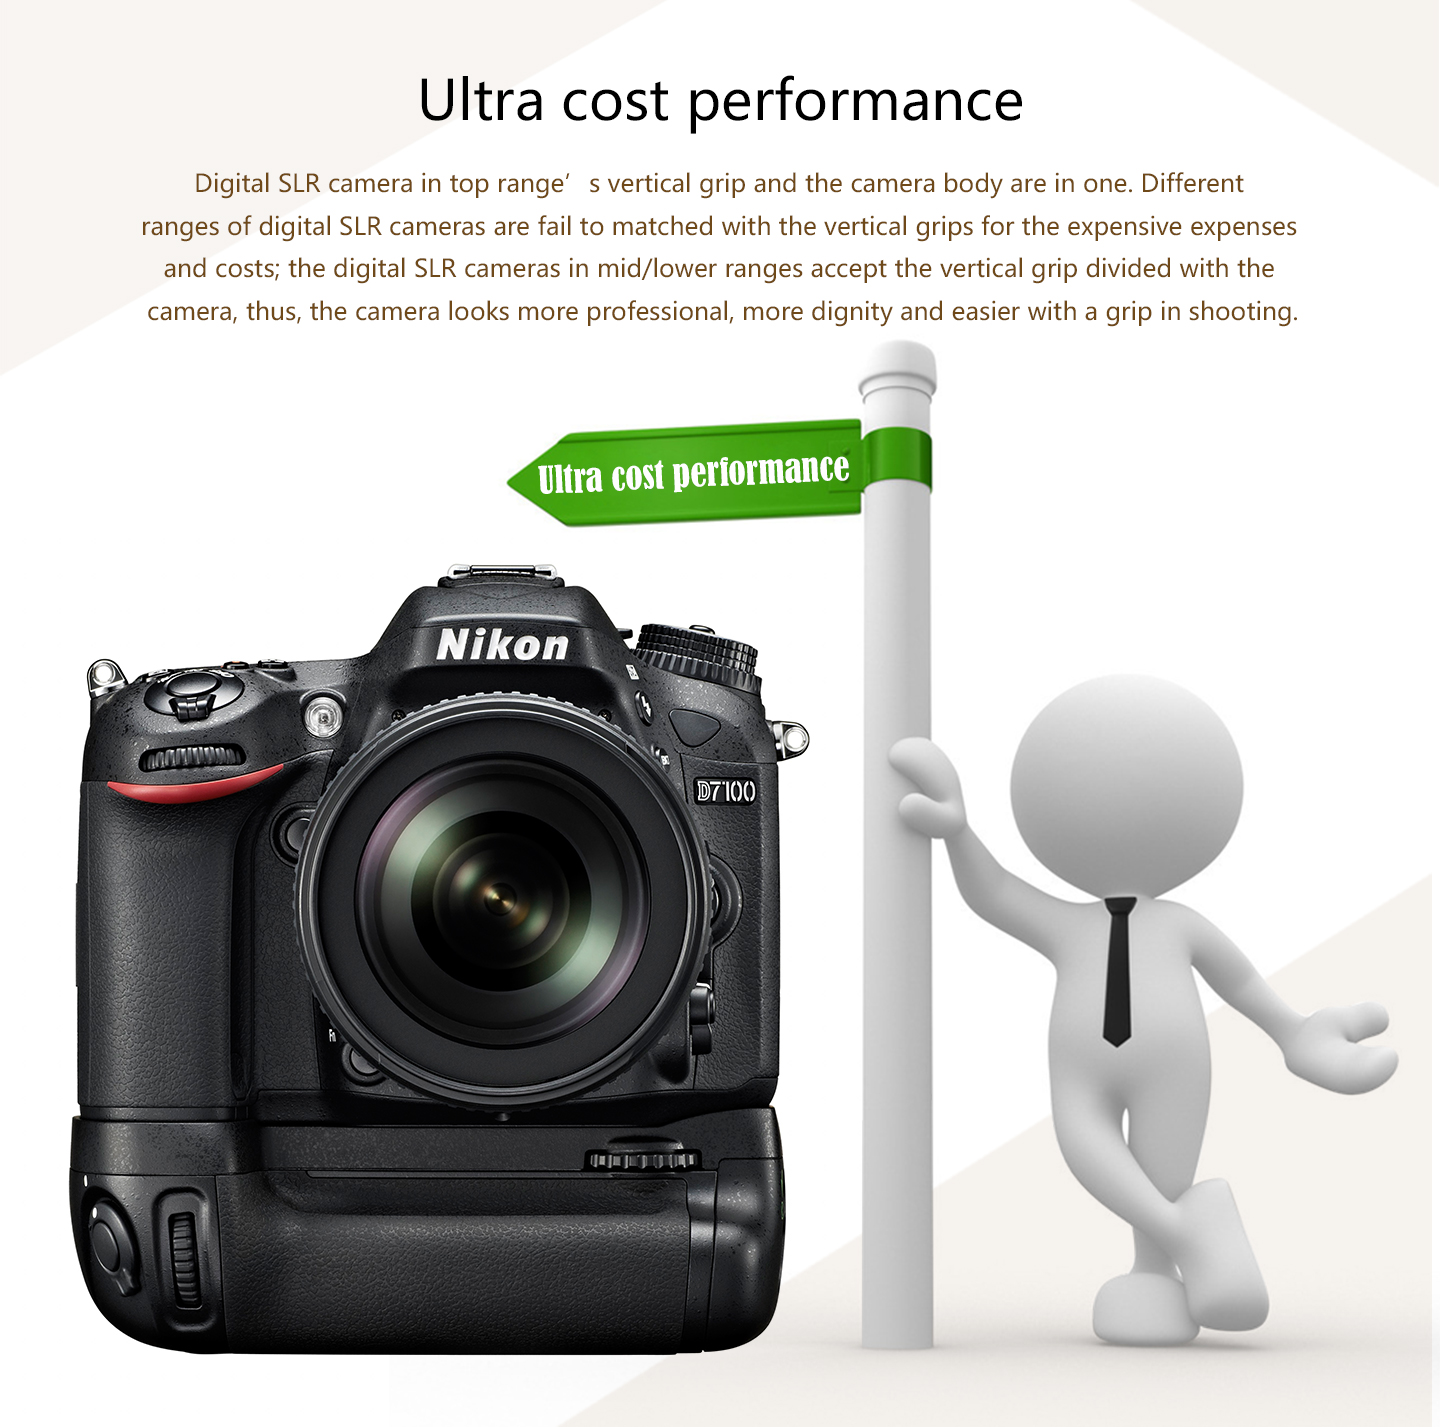 Ultra cost performance